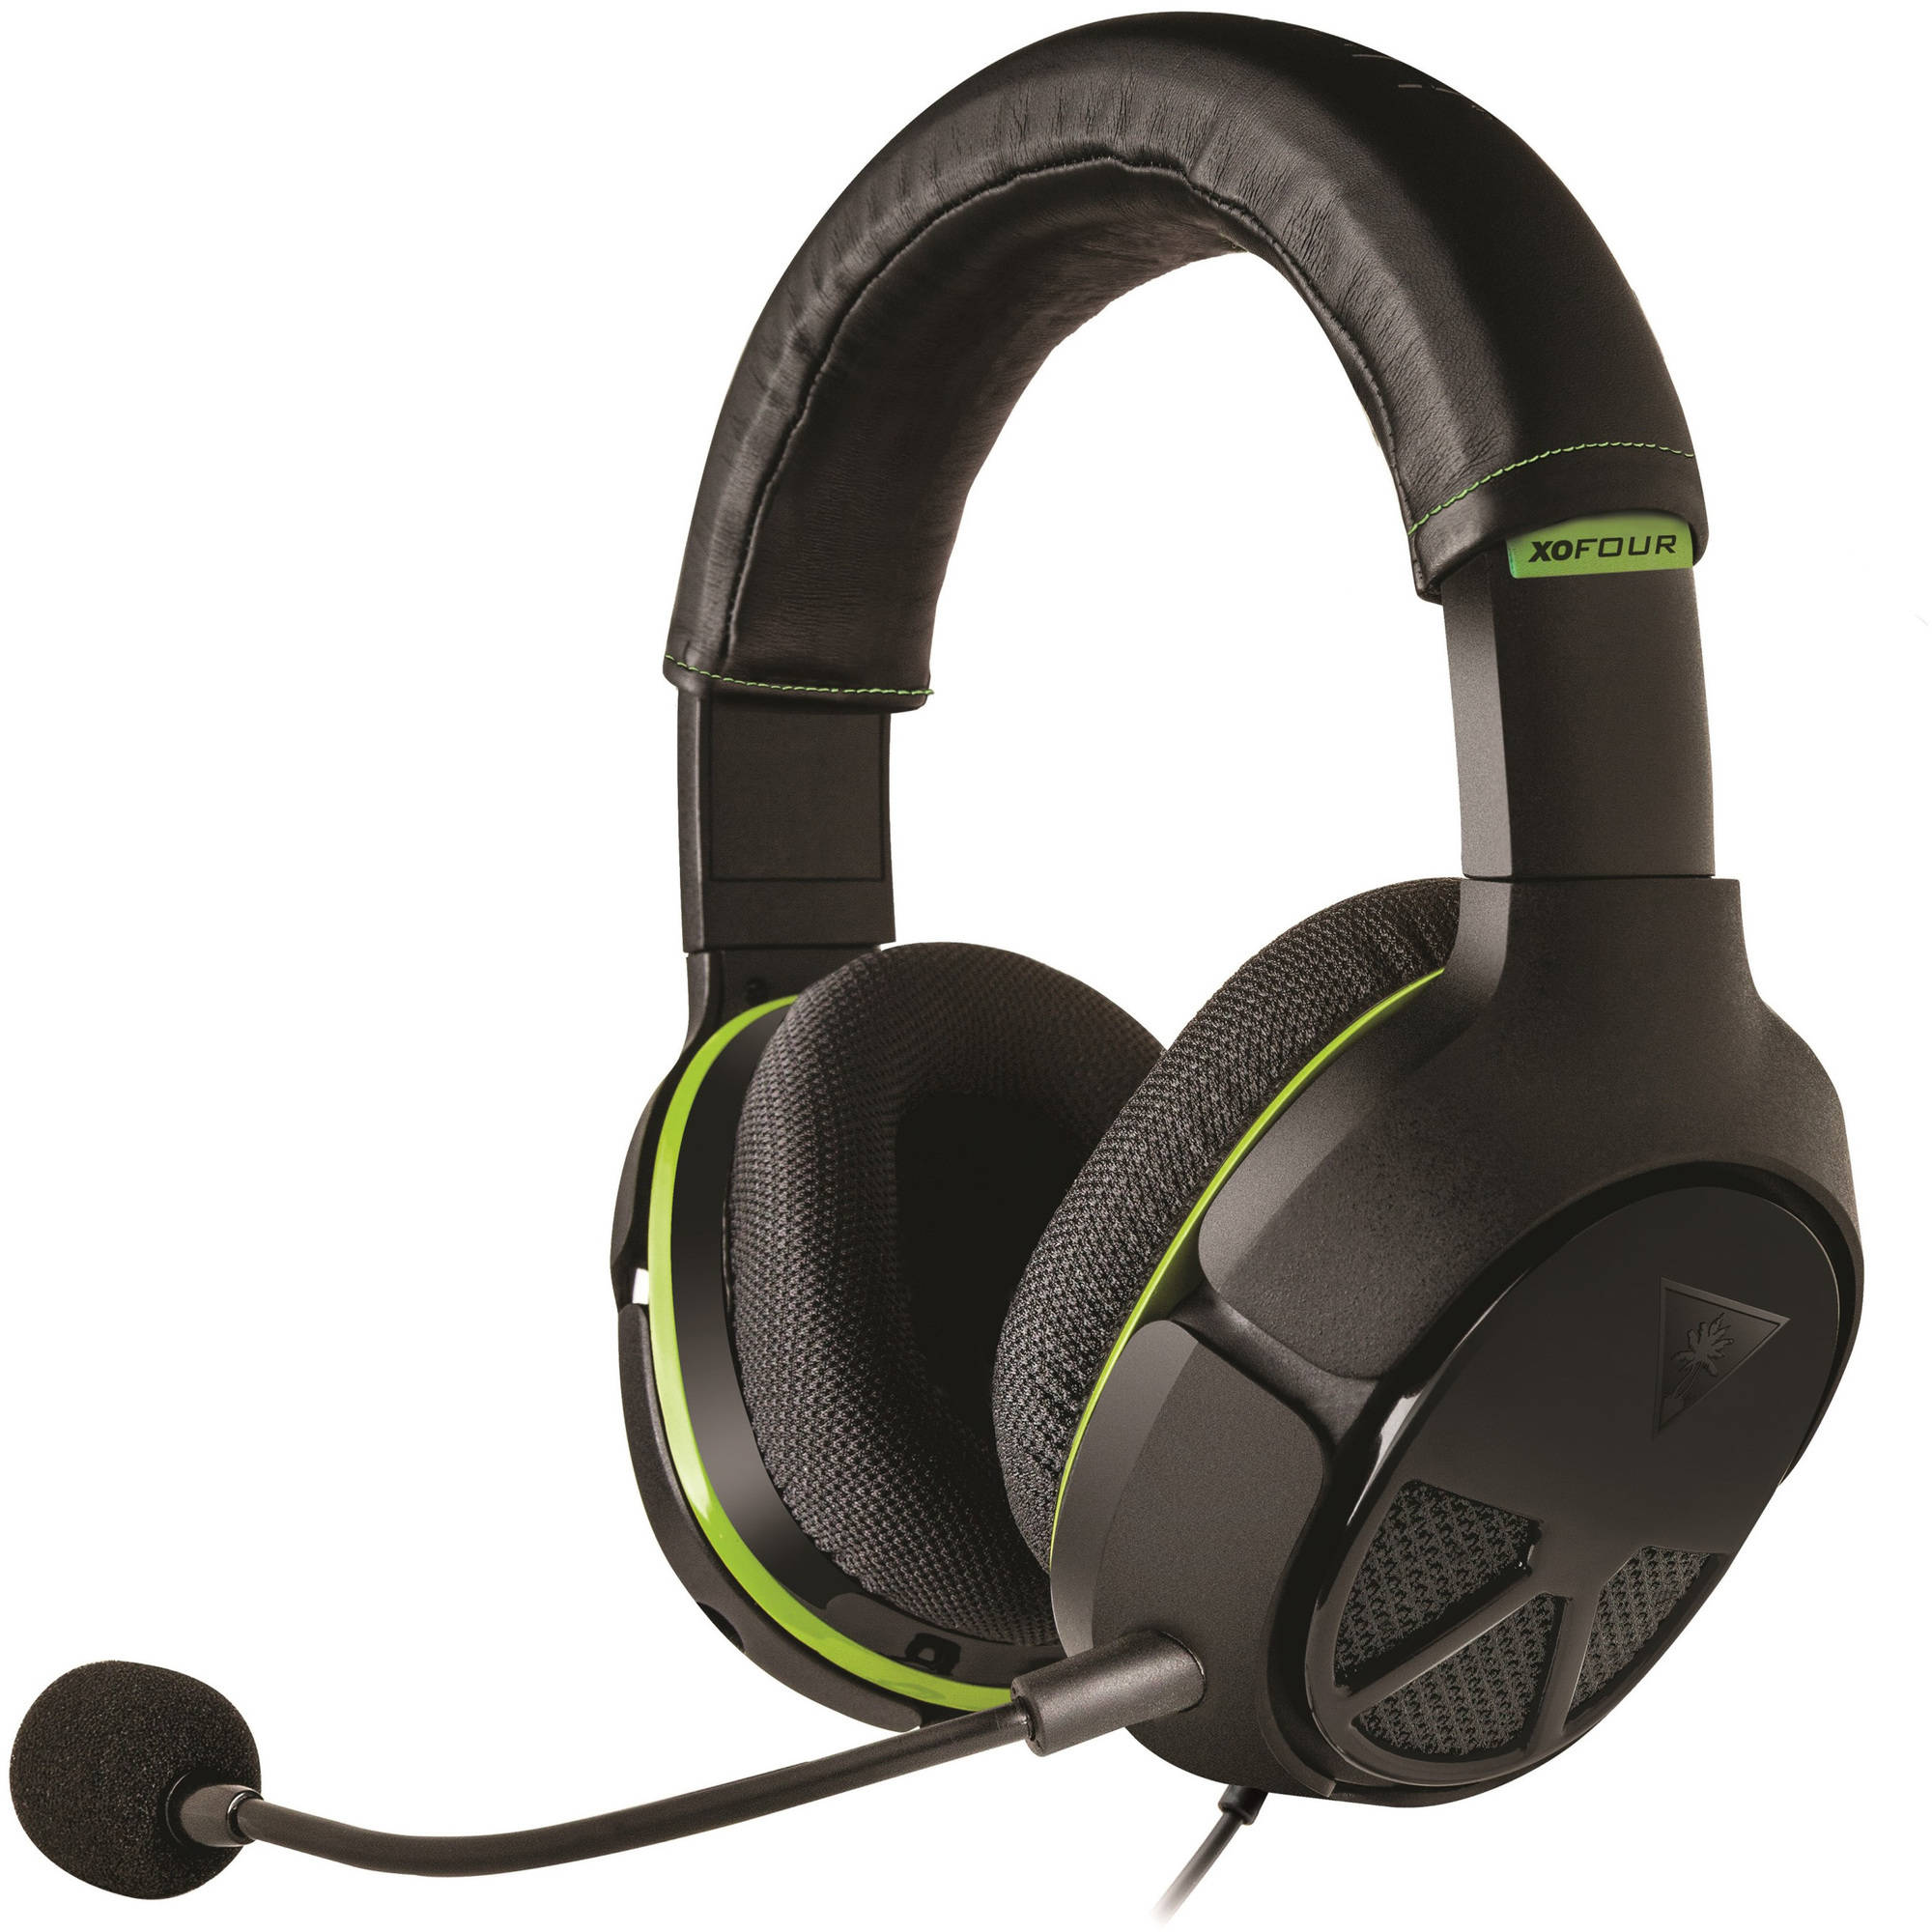 Refurbished Turtle Beach XO4 Stealth Gaming Headset for Xbox One